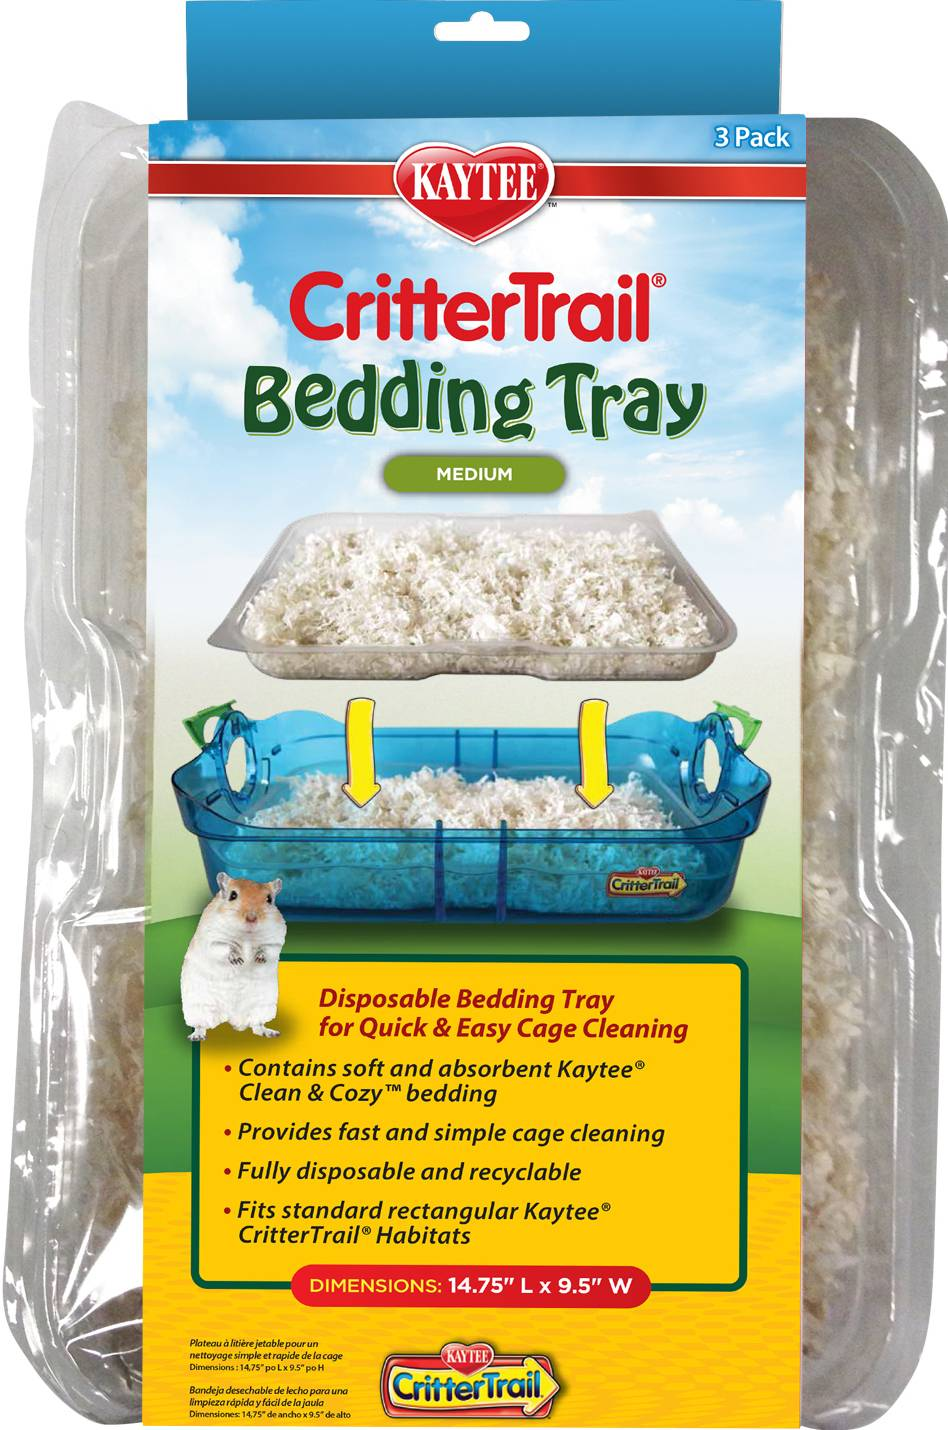 kaytee crittertrail bedding tray | ebay